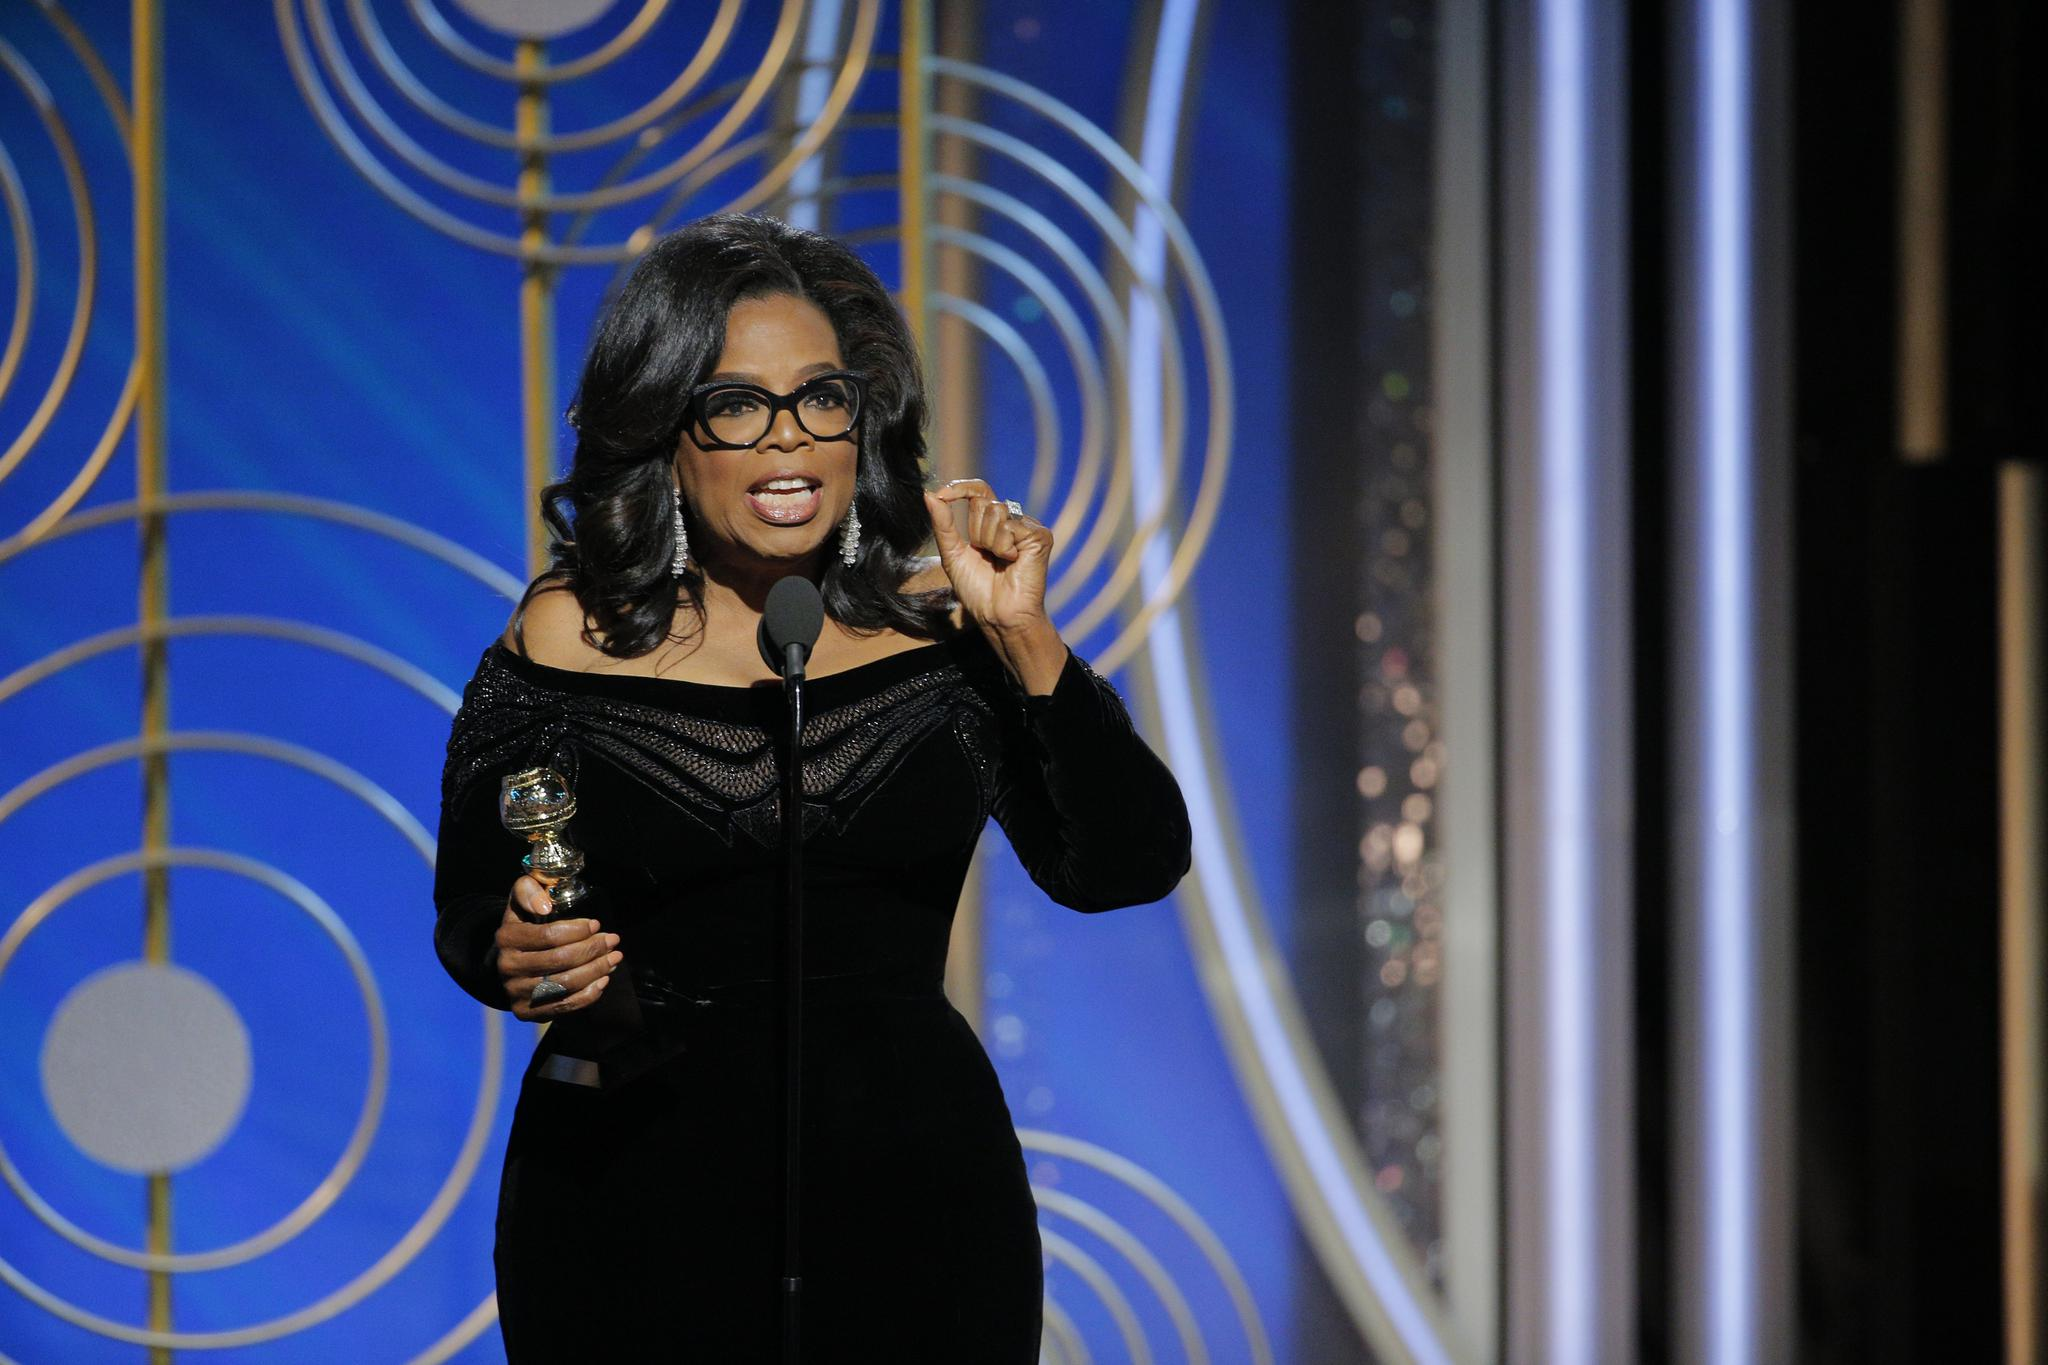 Oprah Winfrey accepts the 2018 Cecil B. DeMille Award speaks onstage during the 75th Annual Golden Globe Awards.